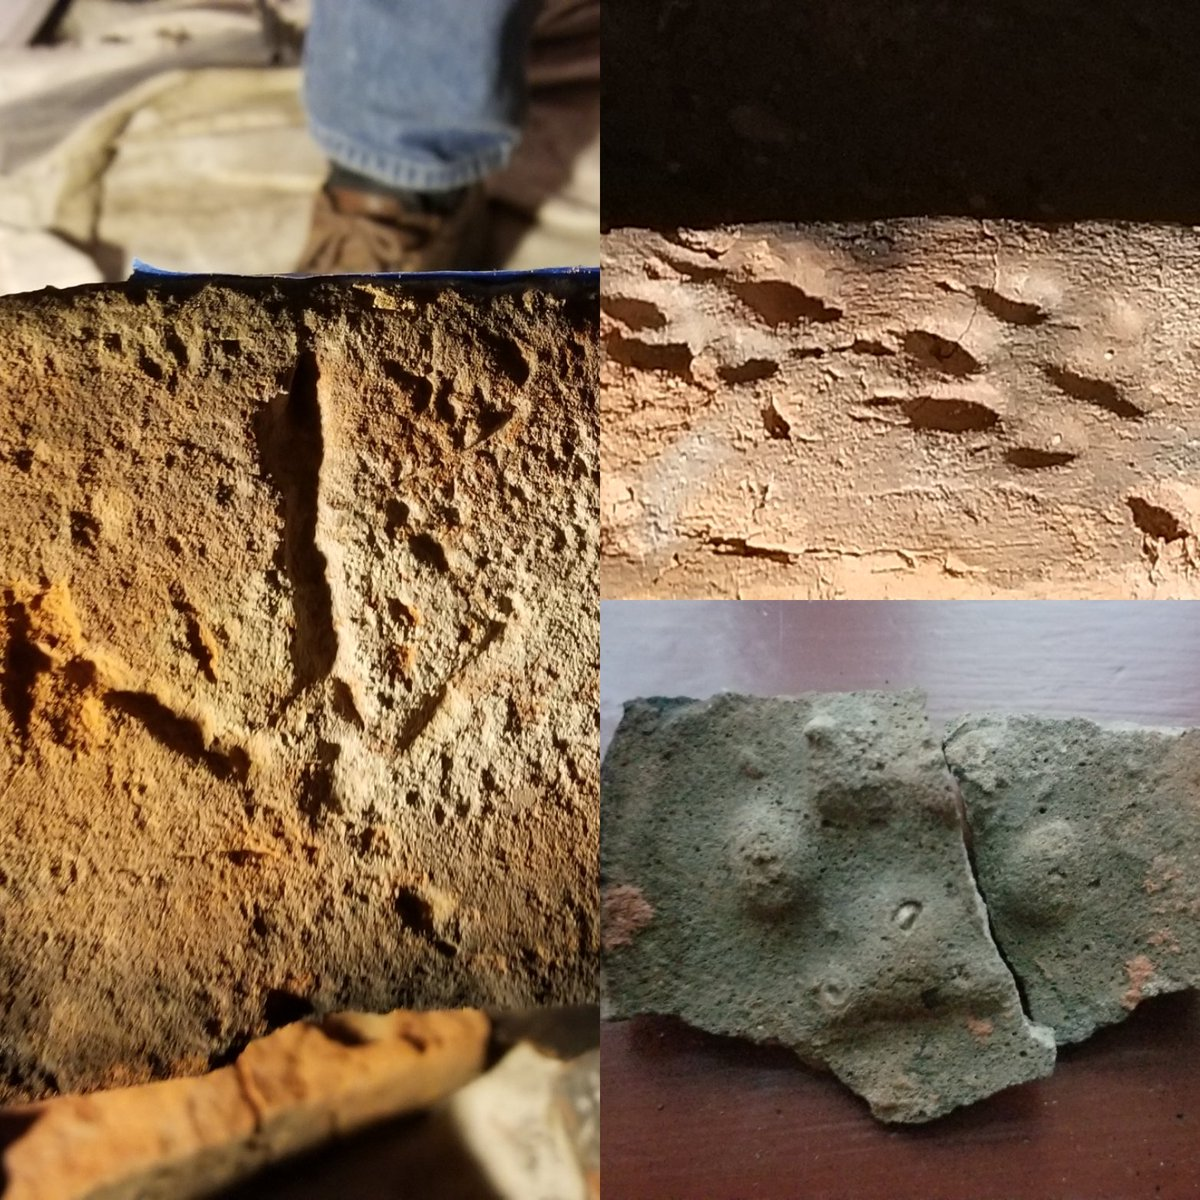 Ever wonder what secrets hide behind plaster? While doing restoration work at the Lynnhaven House, a surprise greeted us! Prints, including turkey and dog prints, were found on some of the bricks making up one of the fireplaces! How cool! #SecretsMW #MuseumWeek